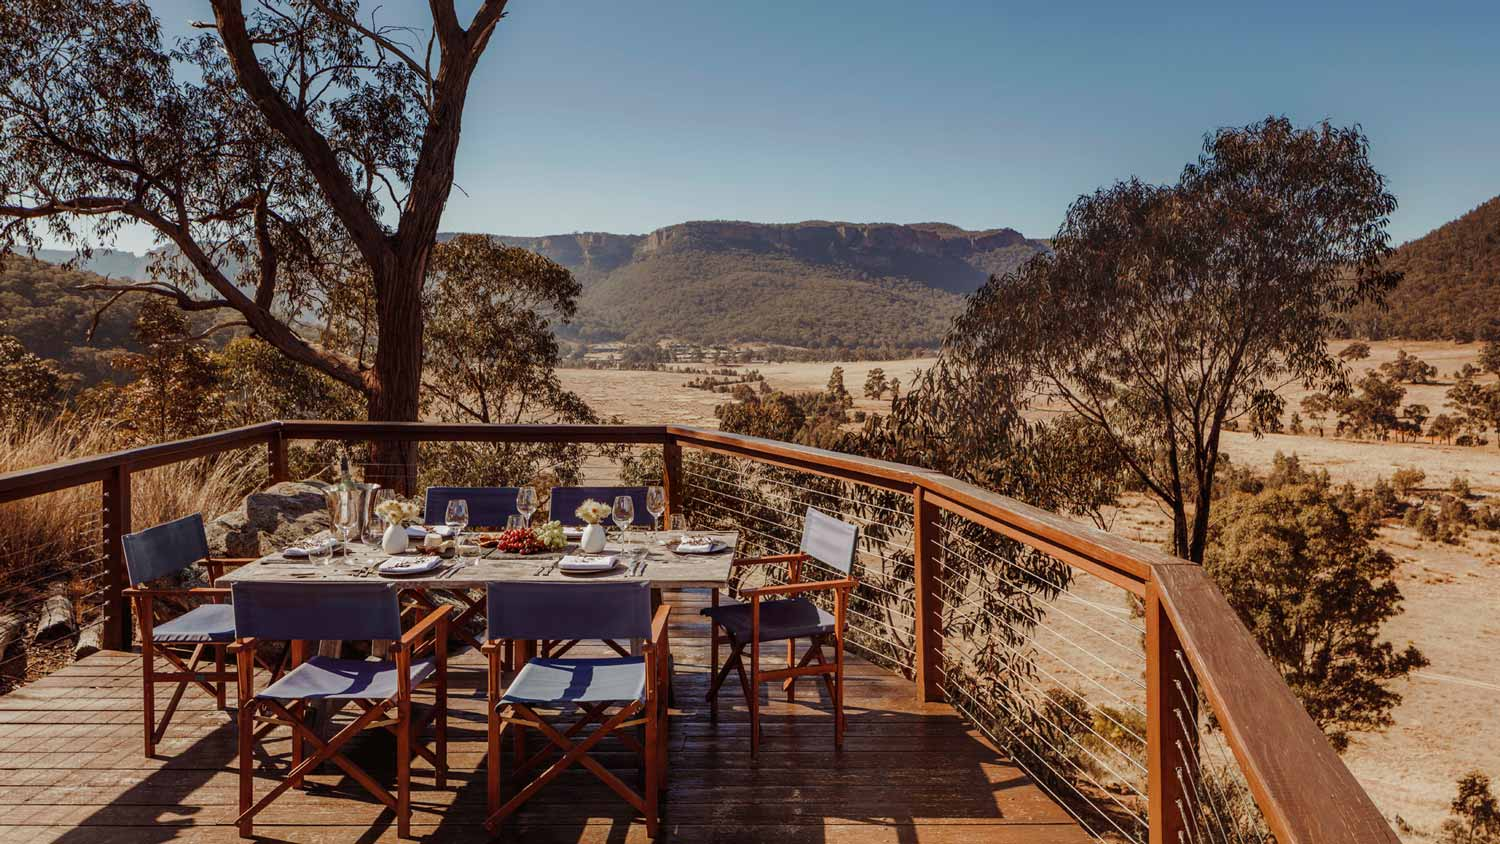 Picnic deck at Emirates One&Only Wolgan Valley